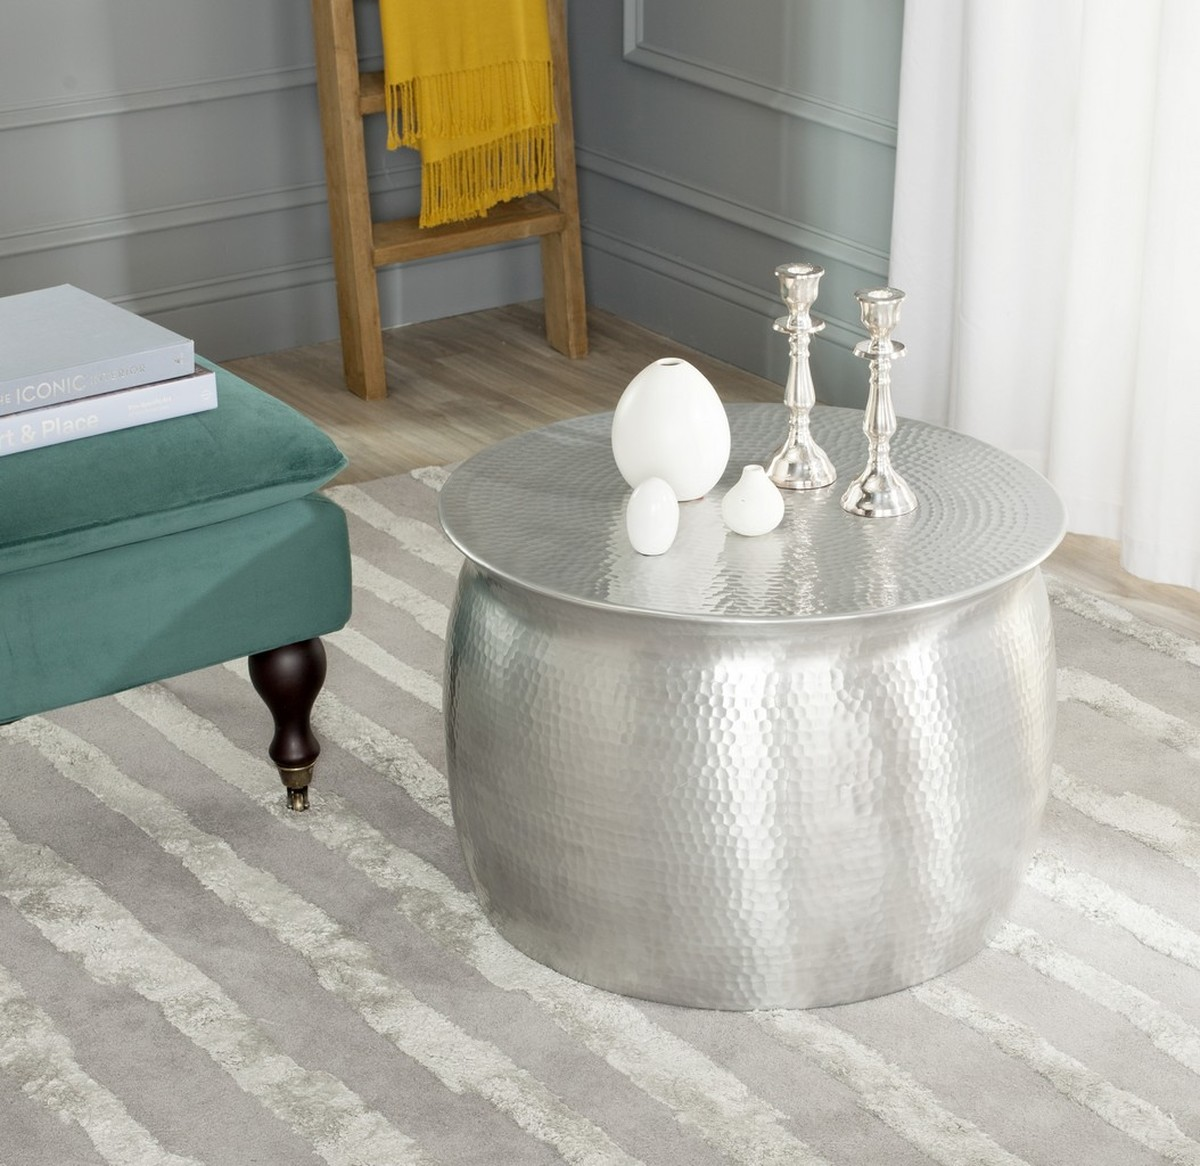 AZTEC METAL TABLE STOOL FOX5516A ACCENT TABLES. Color: Silver